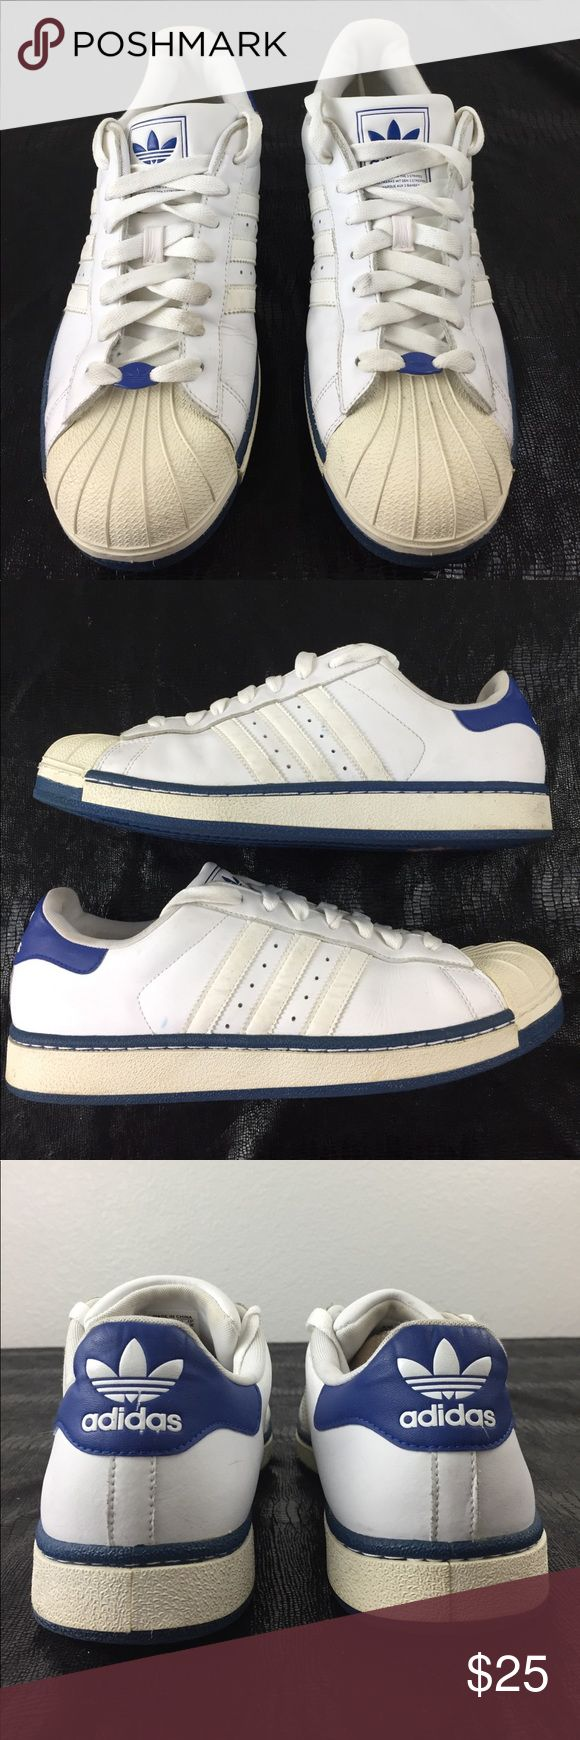 ADIDAS SUPERSTAR Size 11 Adidas Superstar sneakers. 791001 Art No. G09895. White with blue trim.  Signs of wear.  Yellowing on the toe. adidas Shoes Sneakers